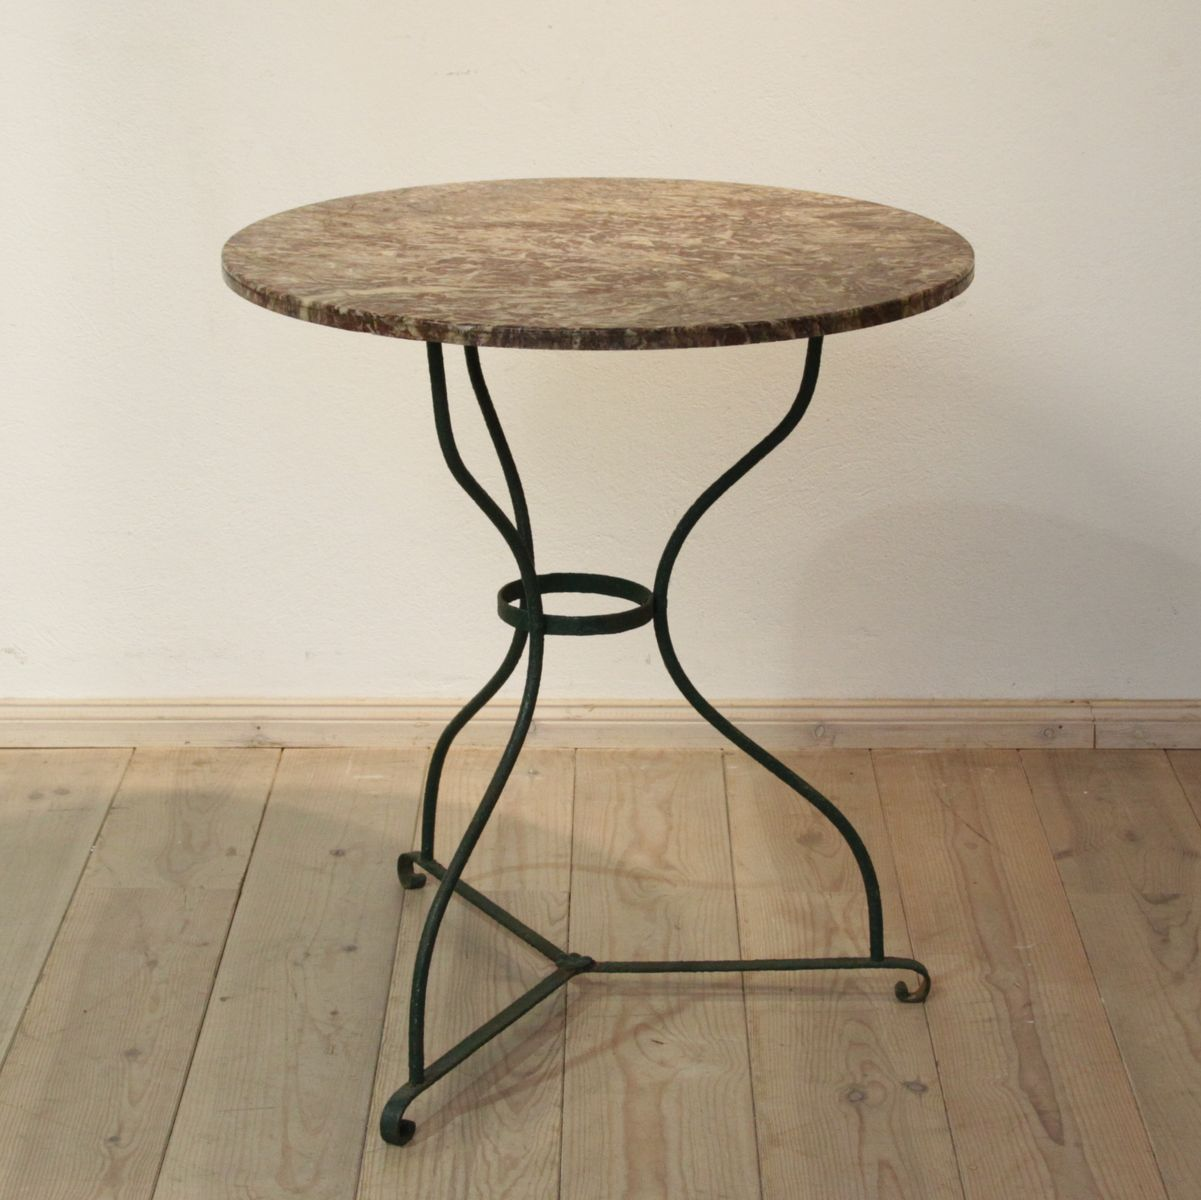 Green Antique Metal Table With Marble Tabletop For Sale At